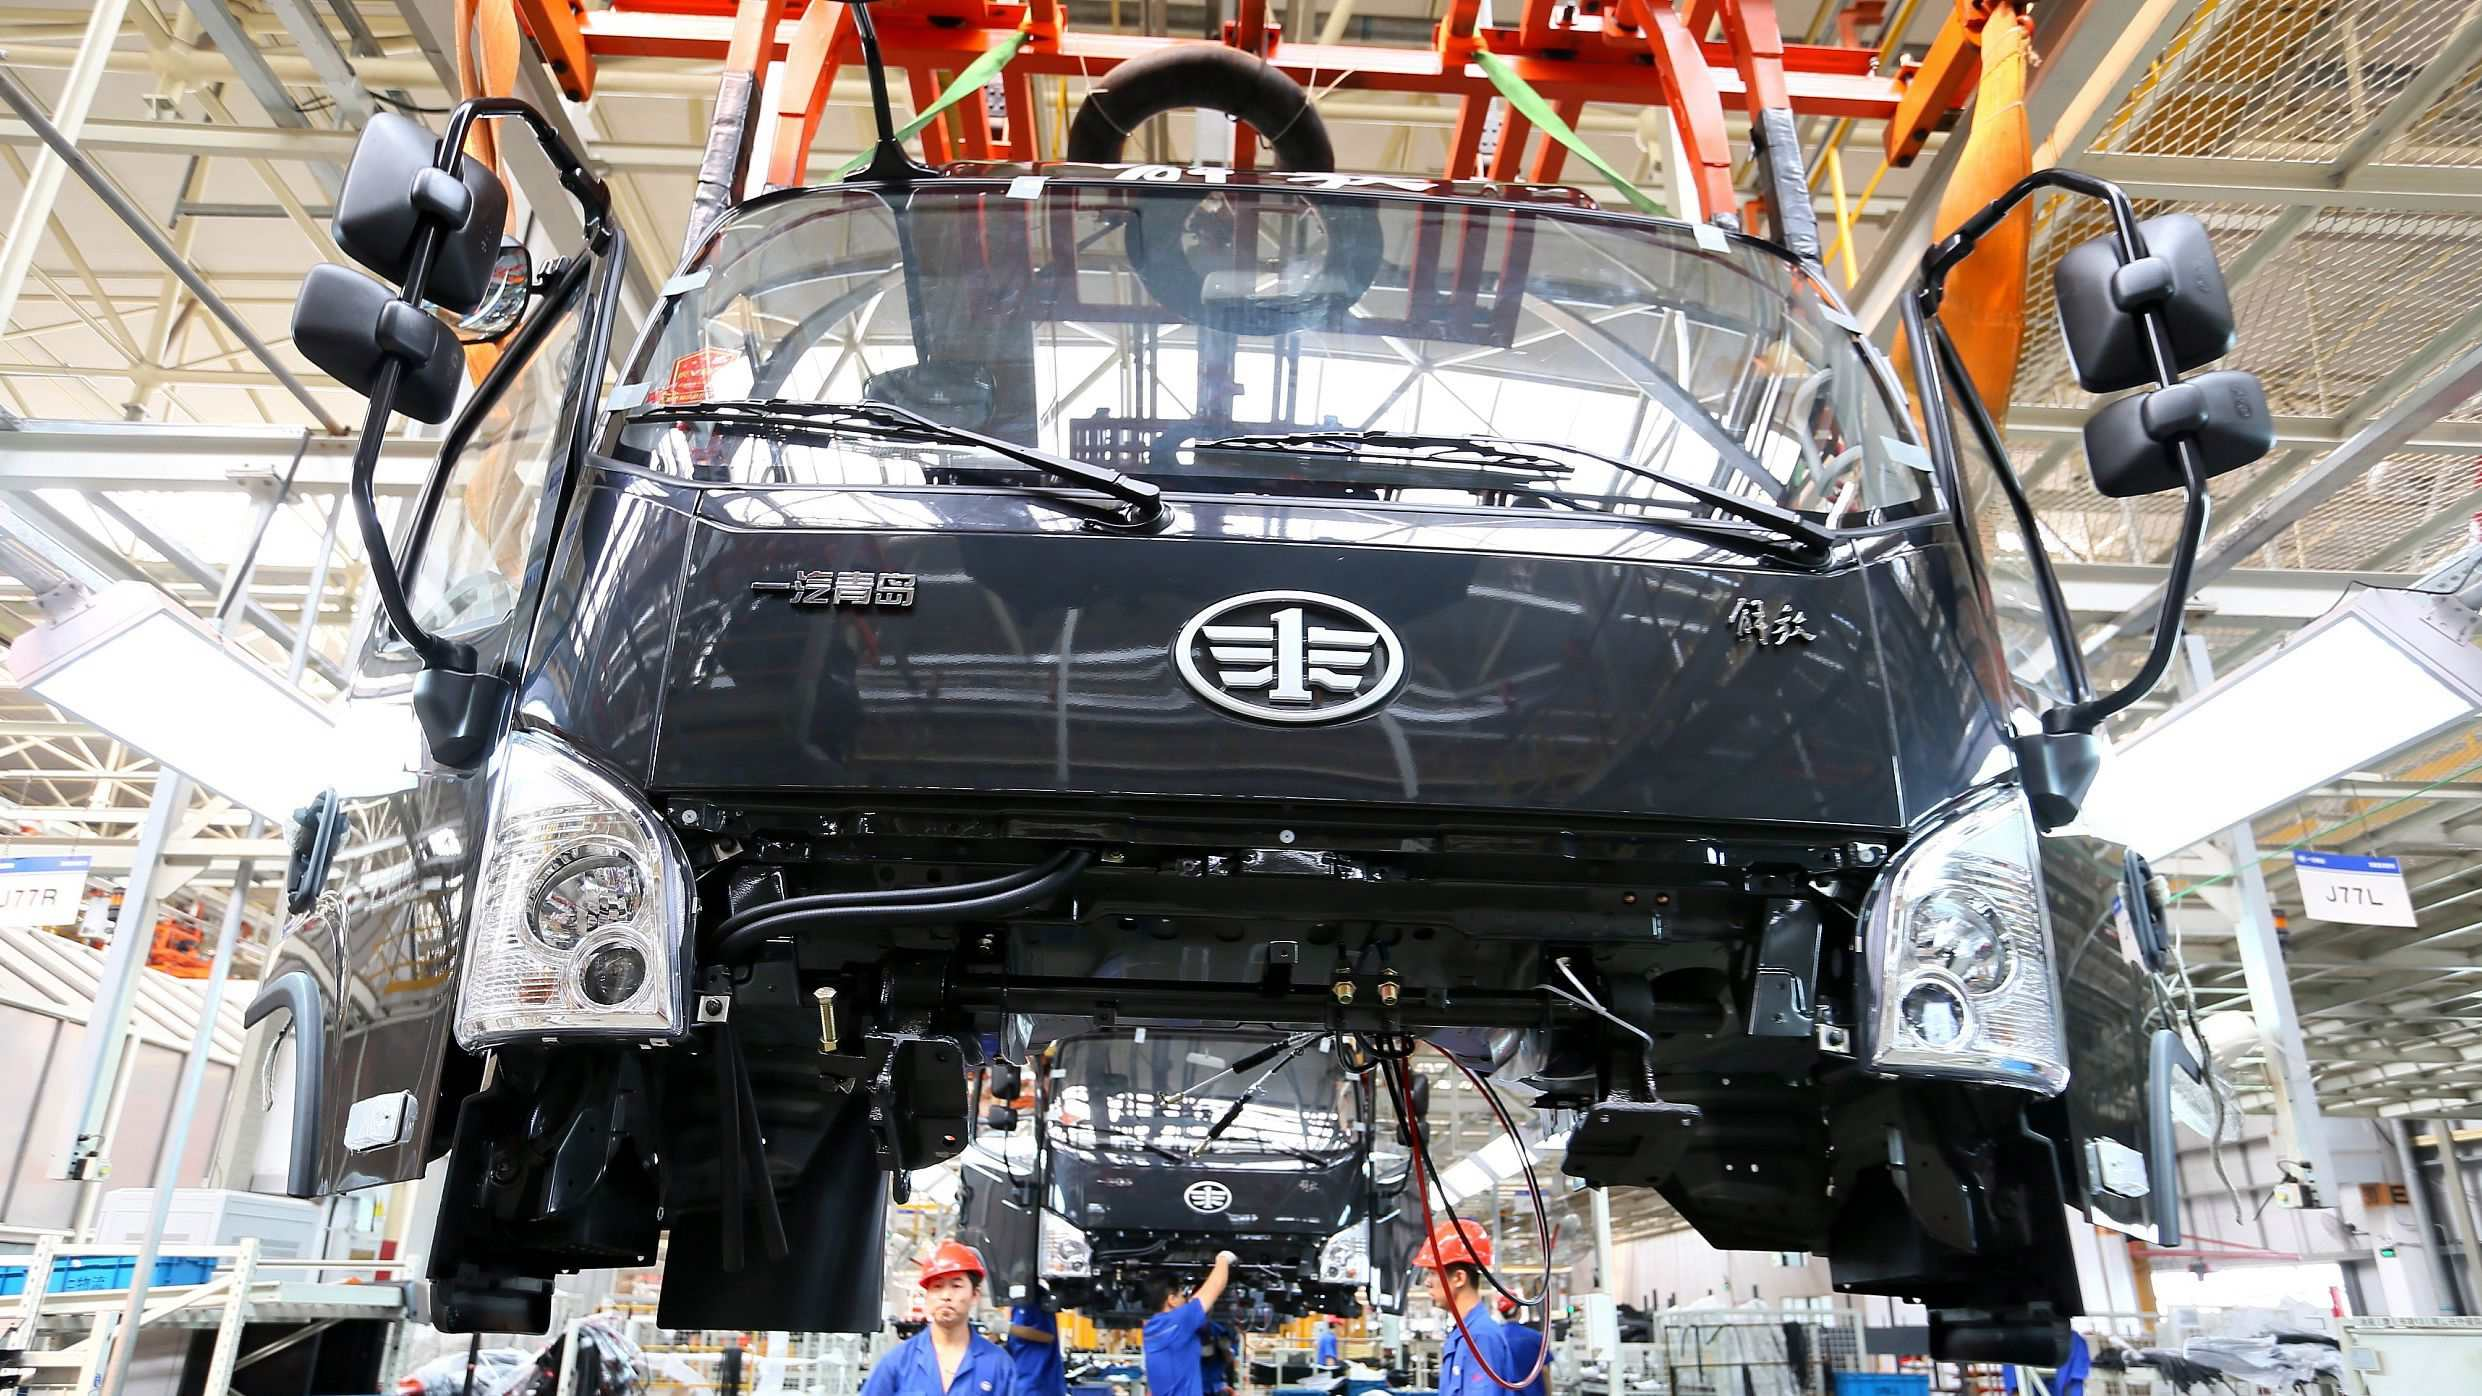 FAW-Volkswagen resumes production amid epidemic